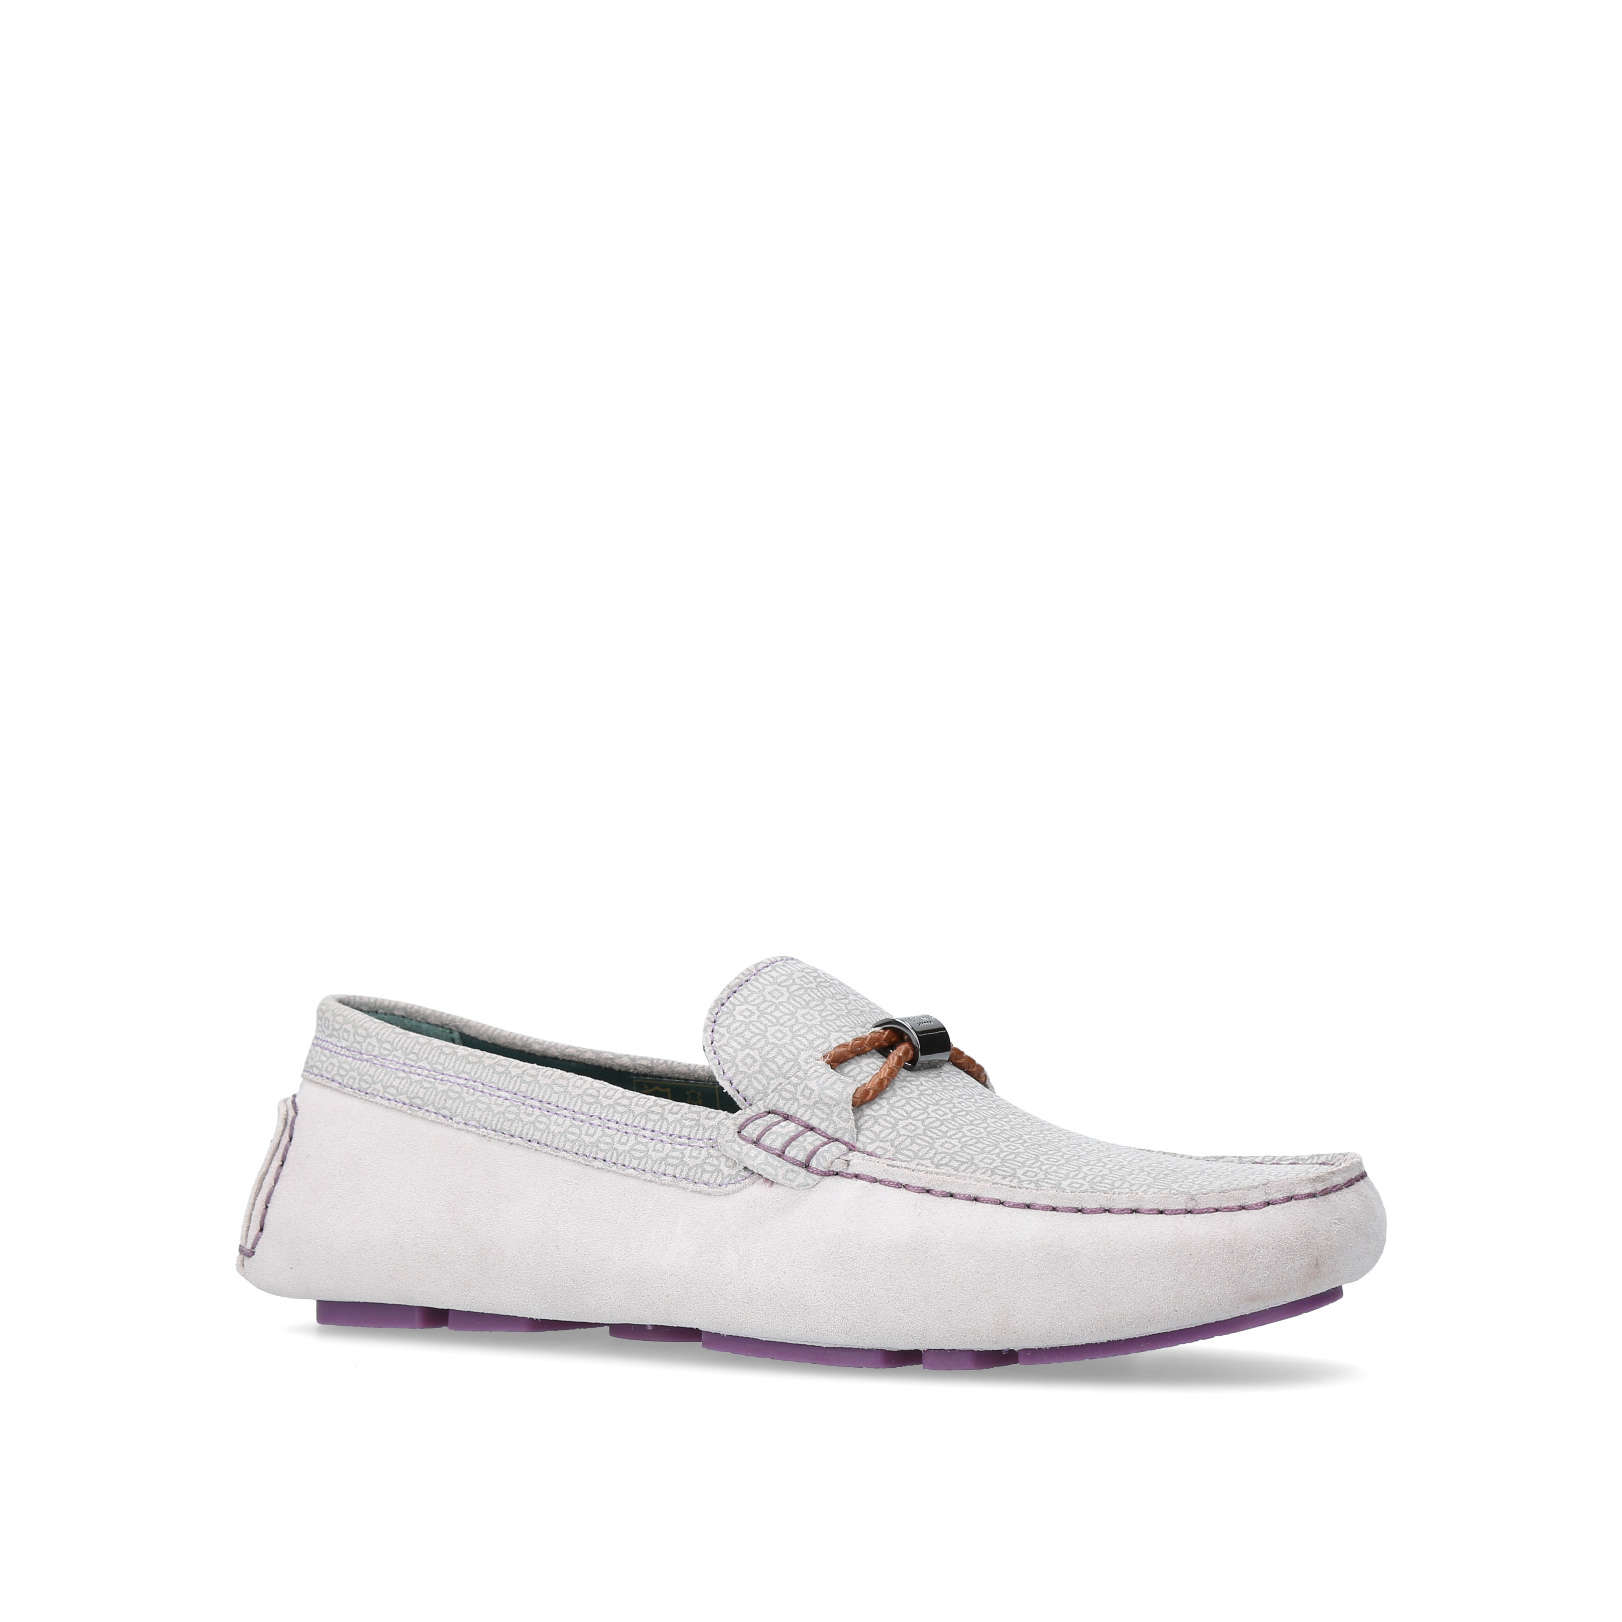 5e608eaf2e5 CARLSUN Ted Baker Carlsun Light Grey Suede Casuals by TED BAKER